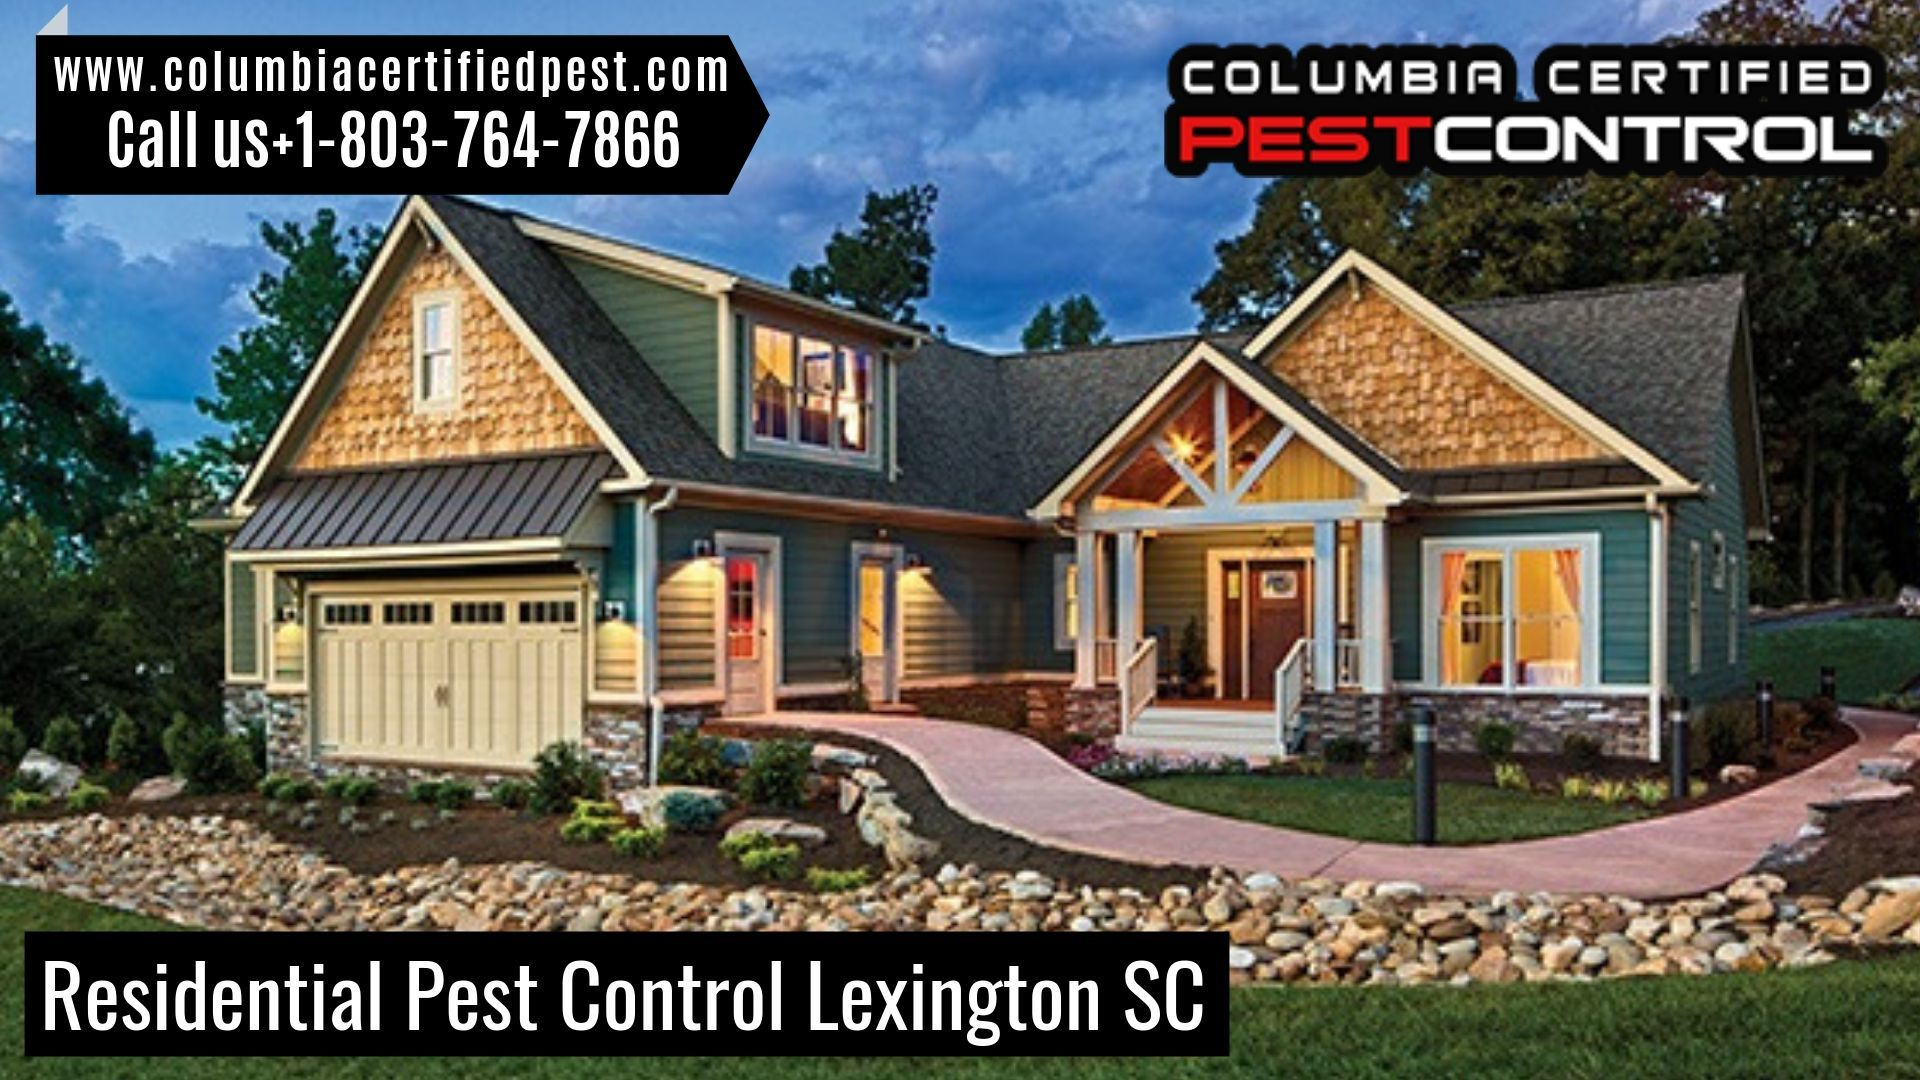 Home Pest Control Columbia Sc With Images Pest Control House Plans Termites